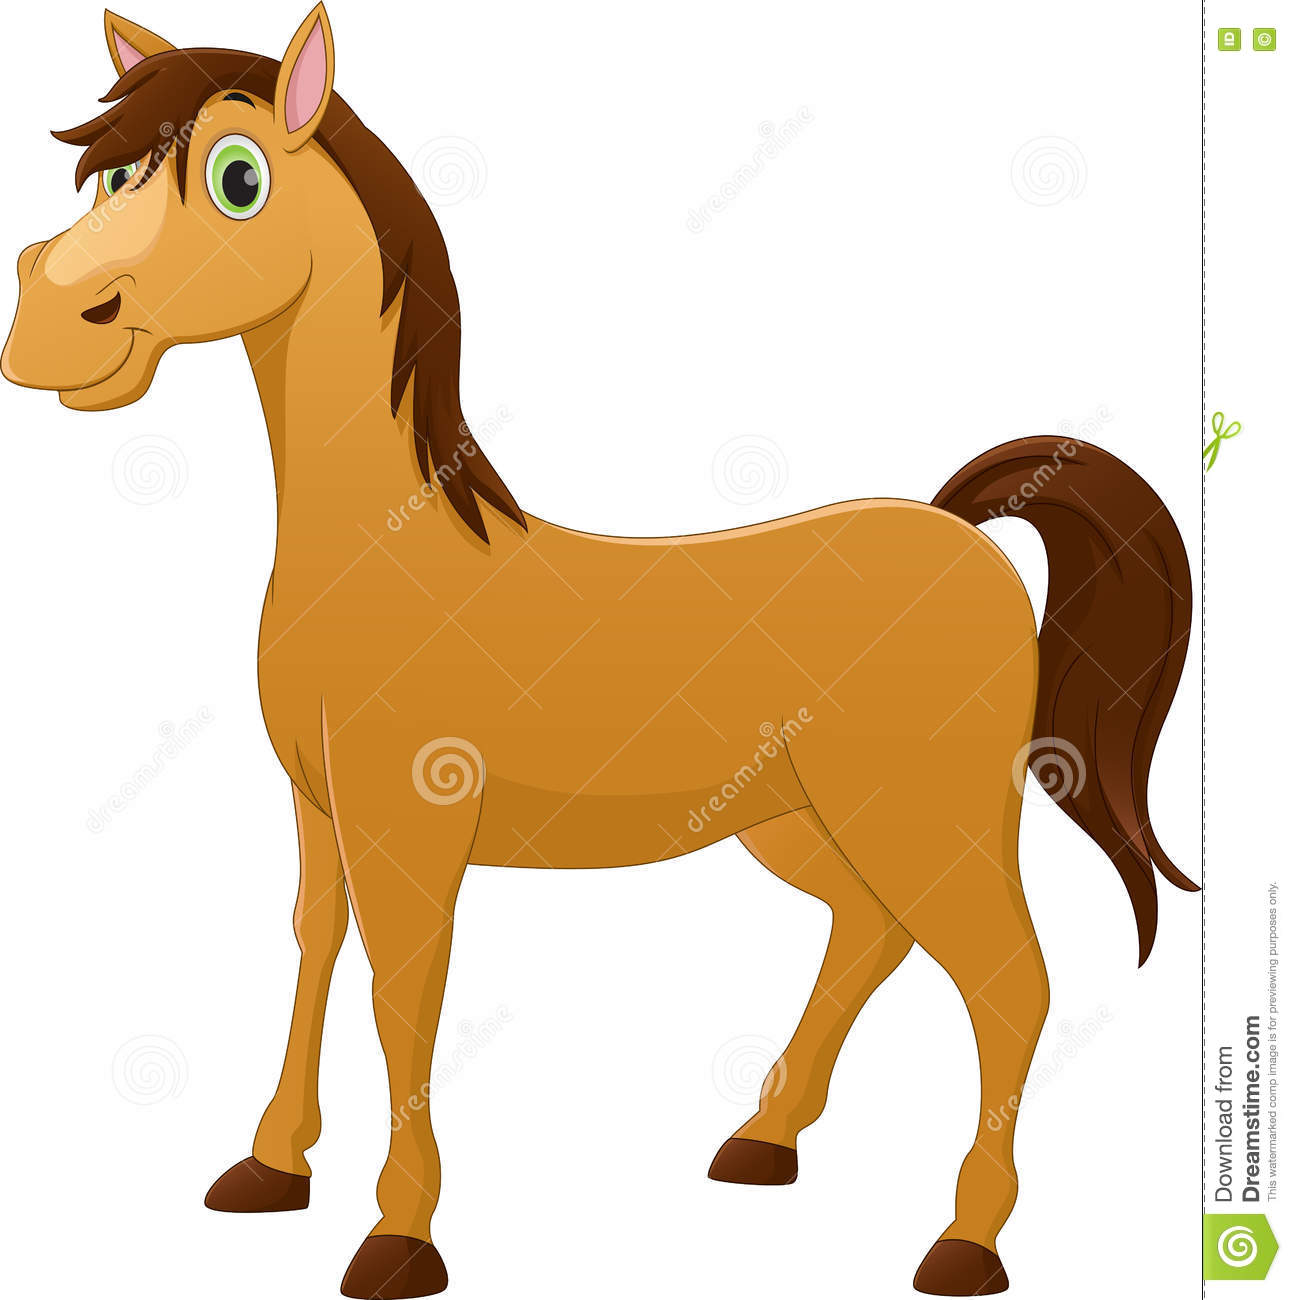 Cute Horse Cartoon Stock Vector Illustration Of Mouth 72641194